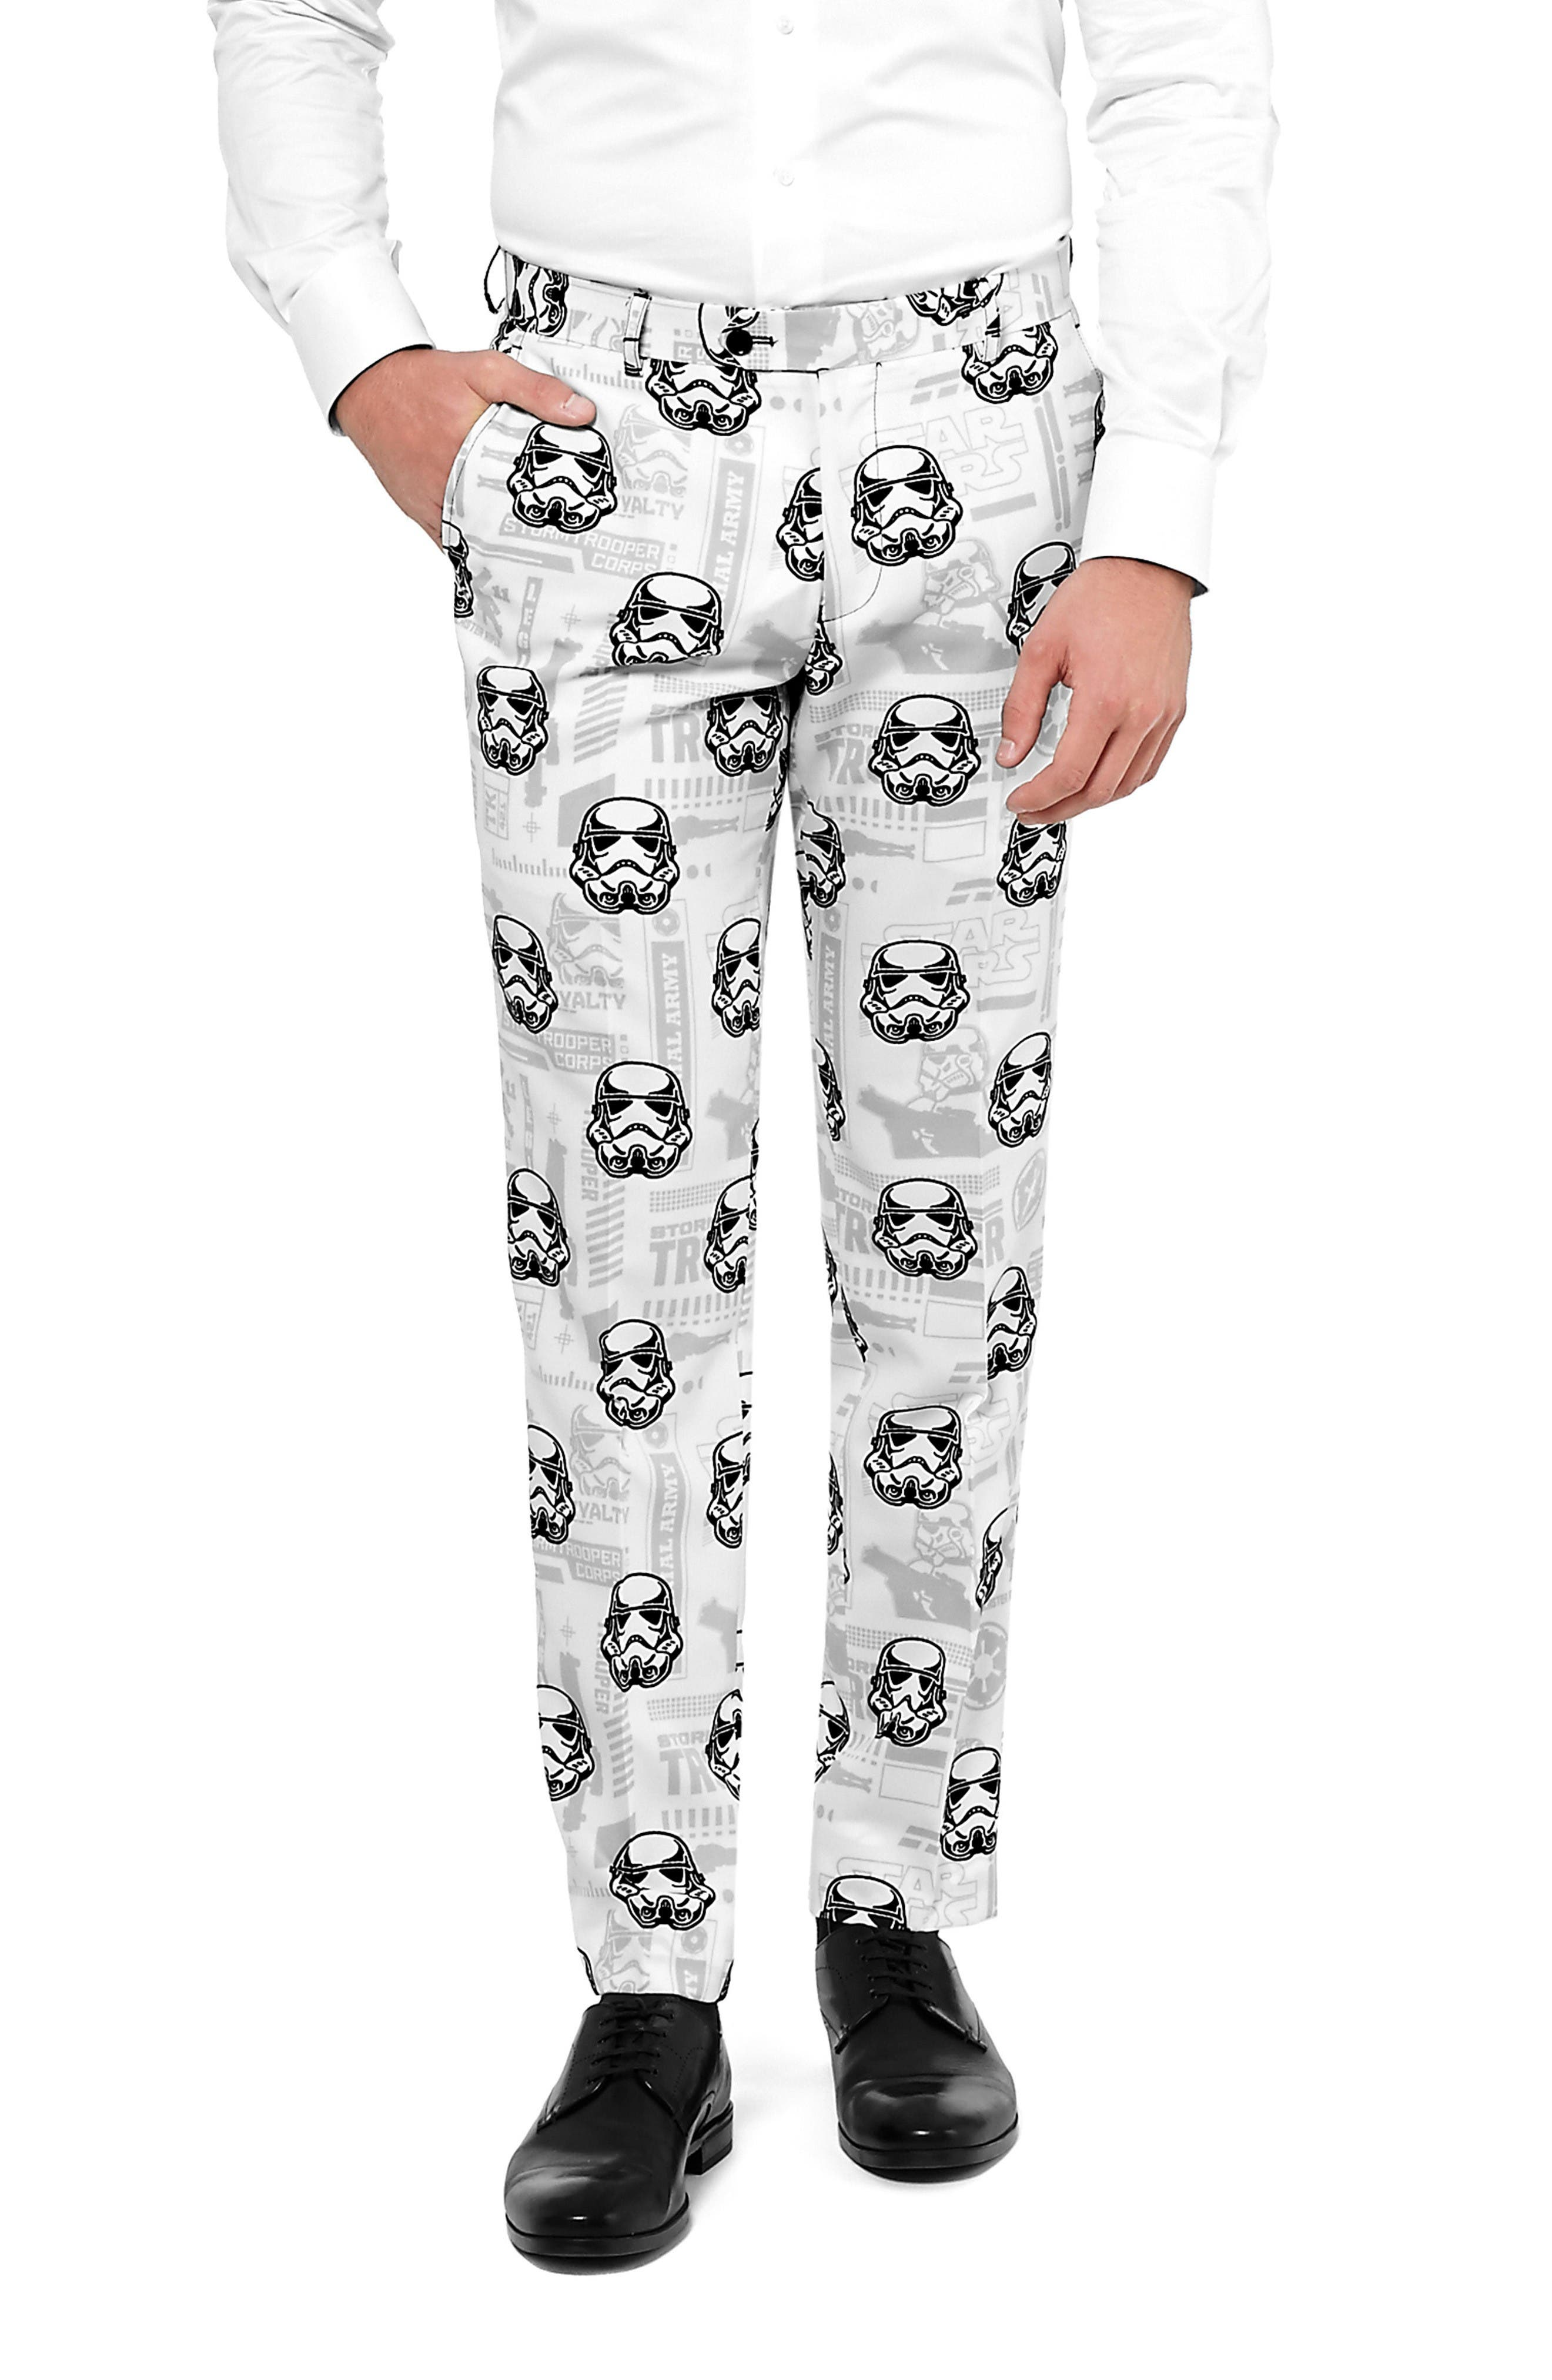 Stormtrooper Trim Fit Two-Piece Suit with Tie,                             Alternate thumbnail 2, color,                             White/ Multi